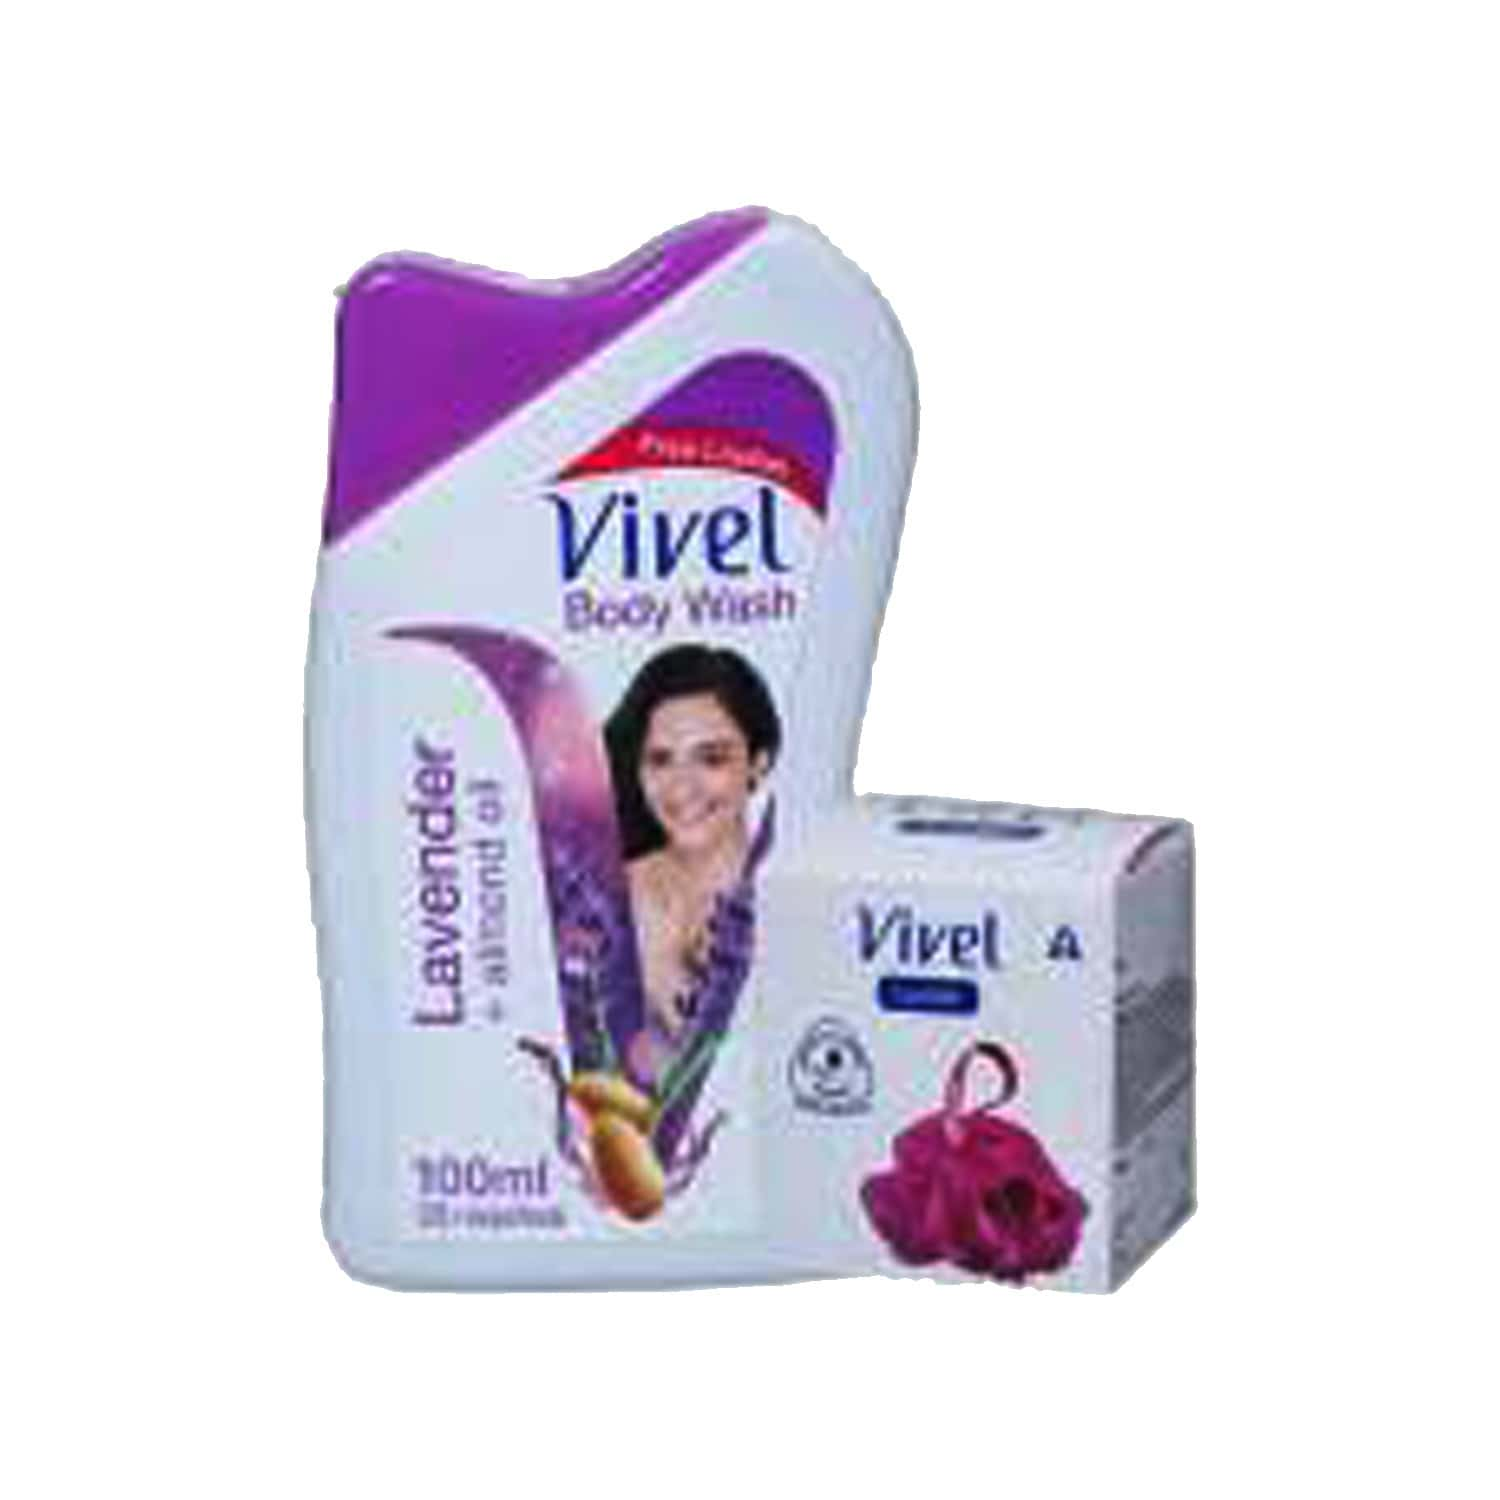 Vivel Lavender And Almond Oil Body Wash  Bottle Of 200 Ml With Free Vivel Loofah